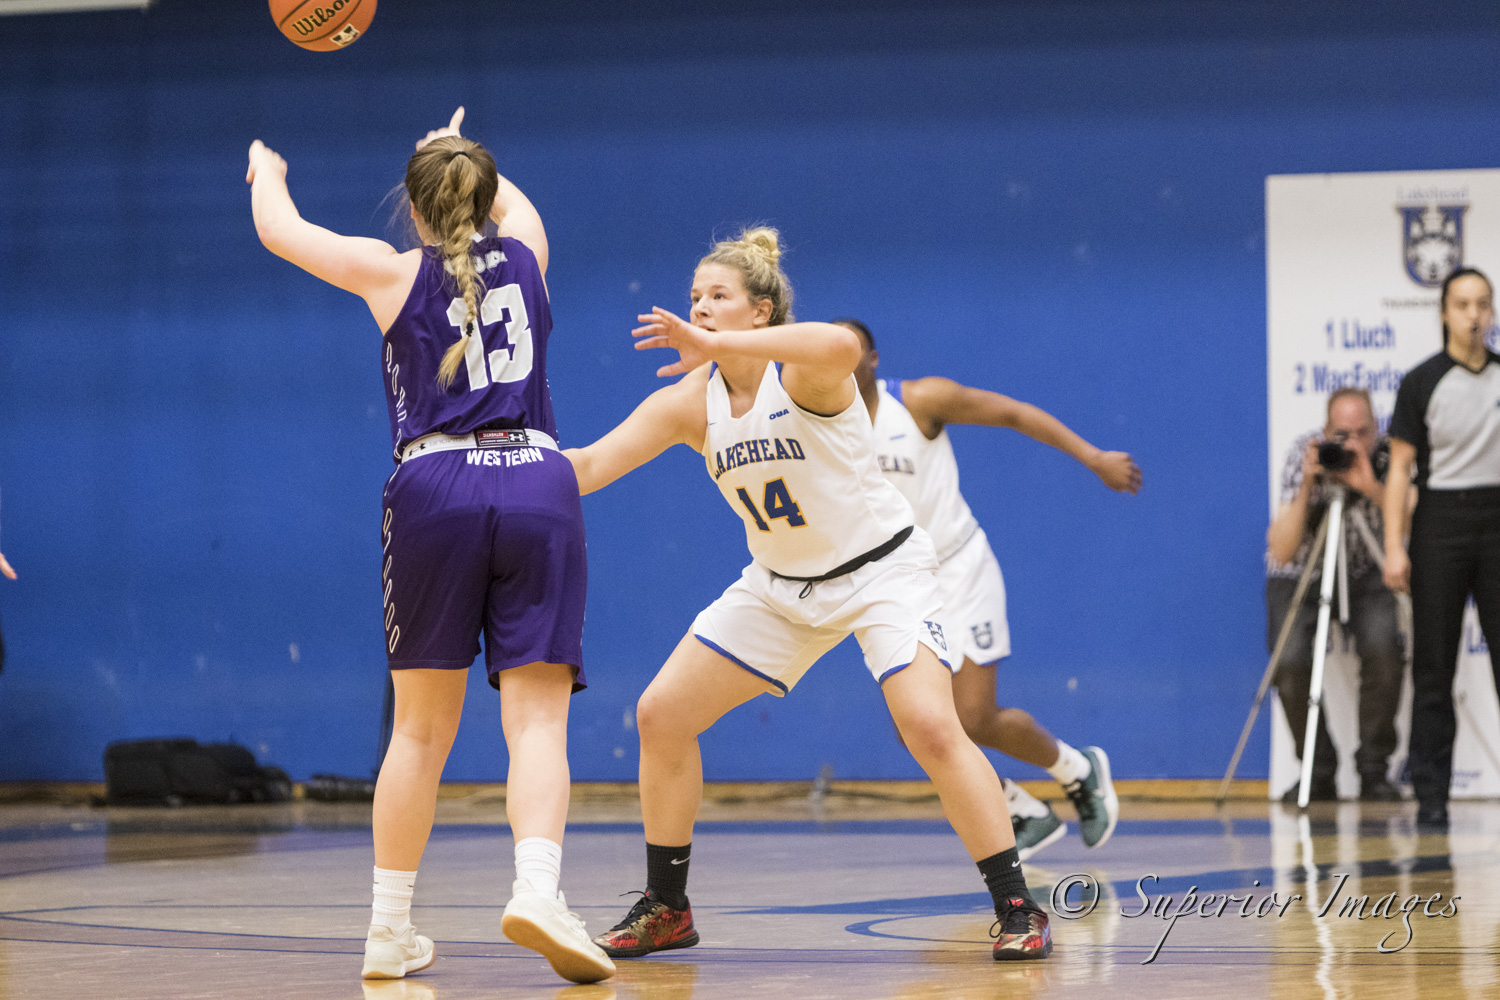 Thunderwolves fight hard in loss to Mustang